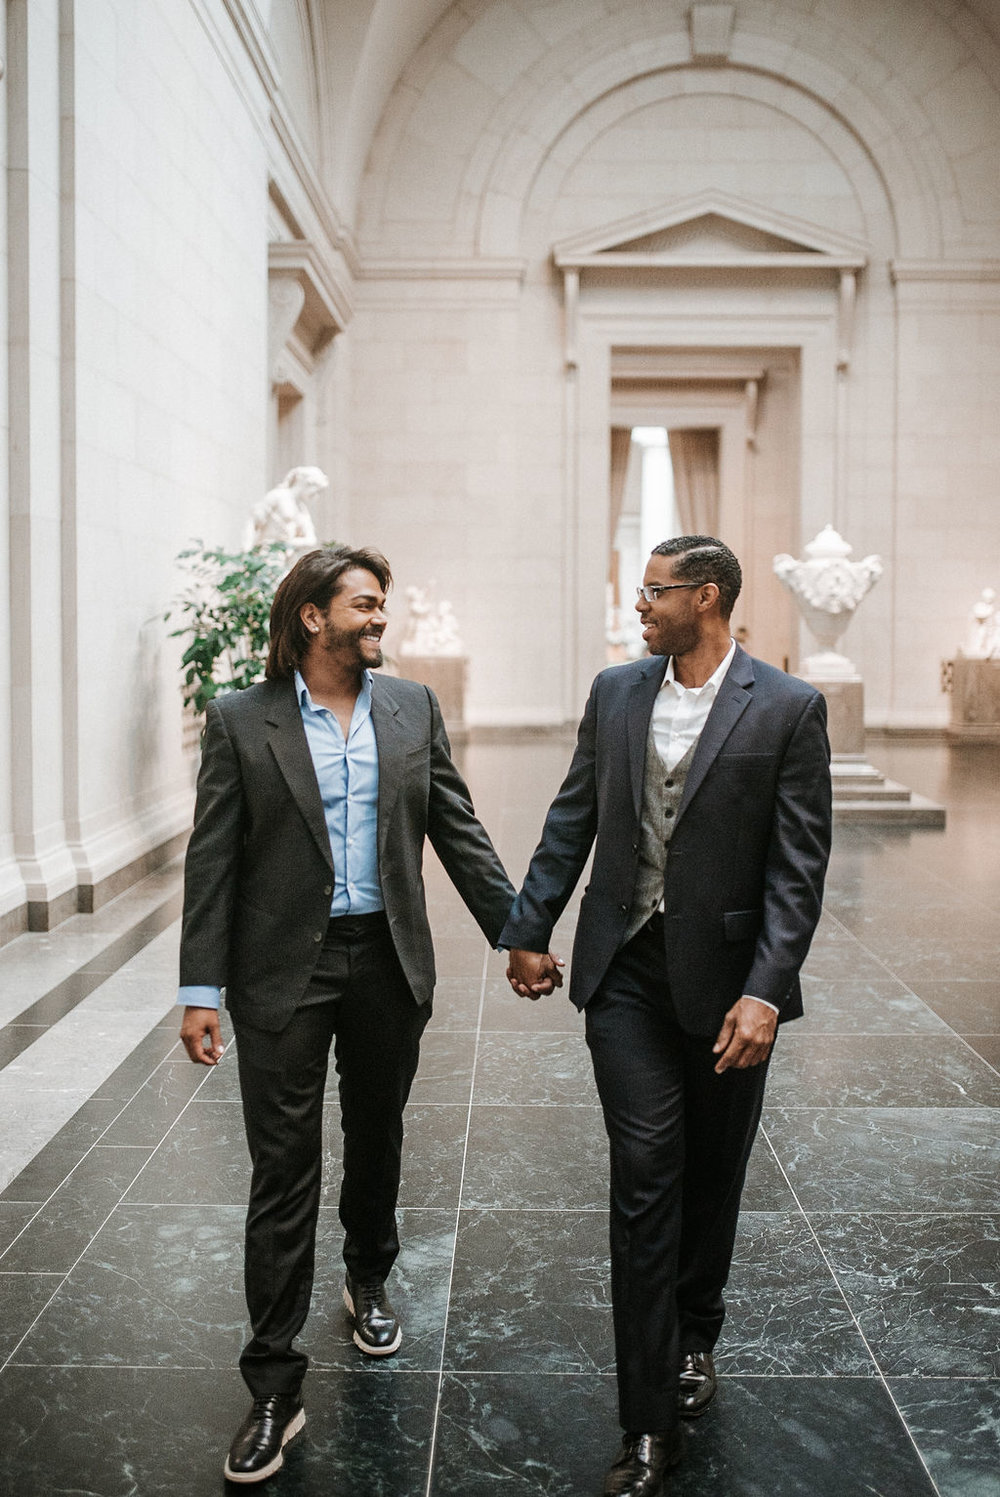 couple smiling and holding hands during an engagement session at the National Portrait Gallery